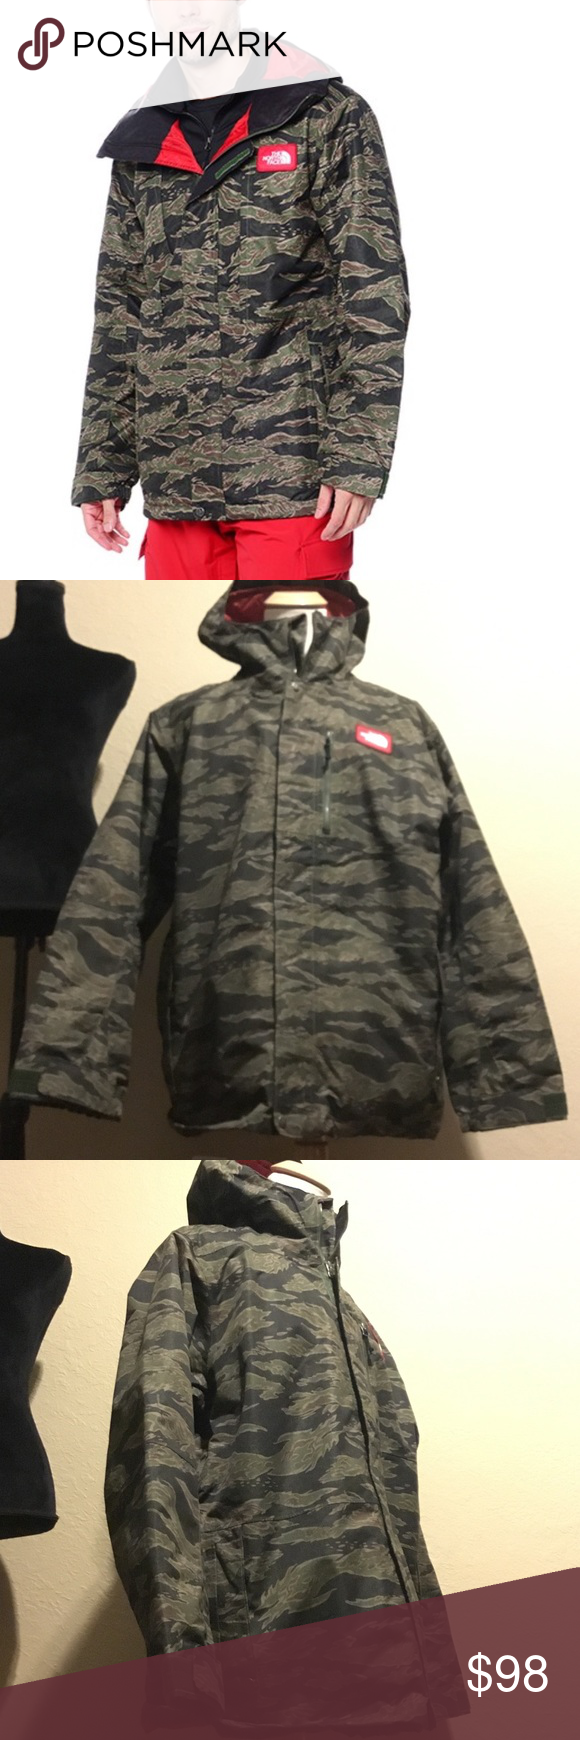 4e9206357c84 The north face men s turn it up jacket XXL New without tag The North Face  Jackets   Coats Military   Field